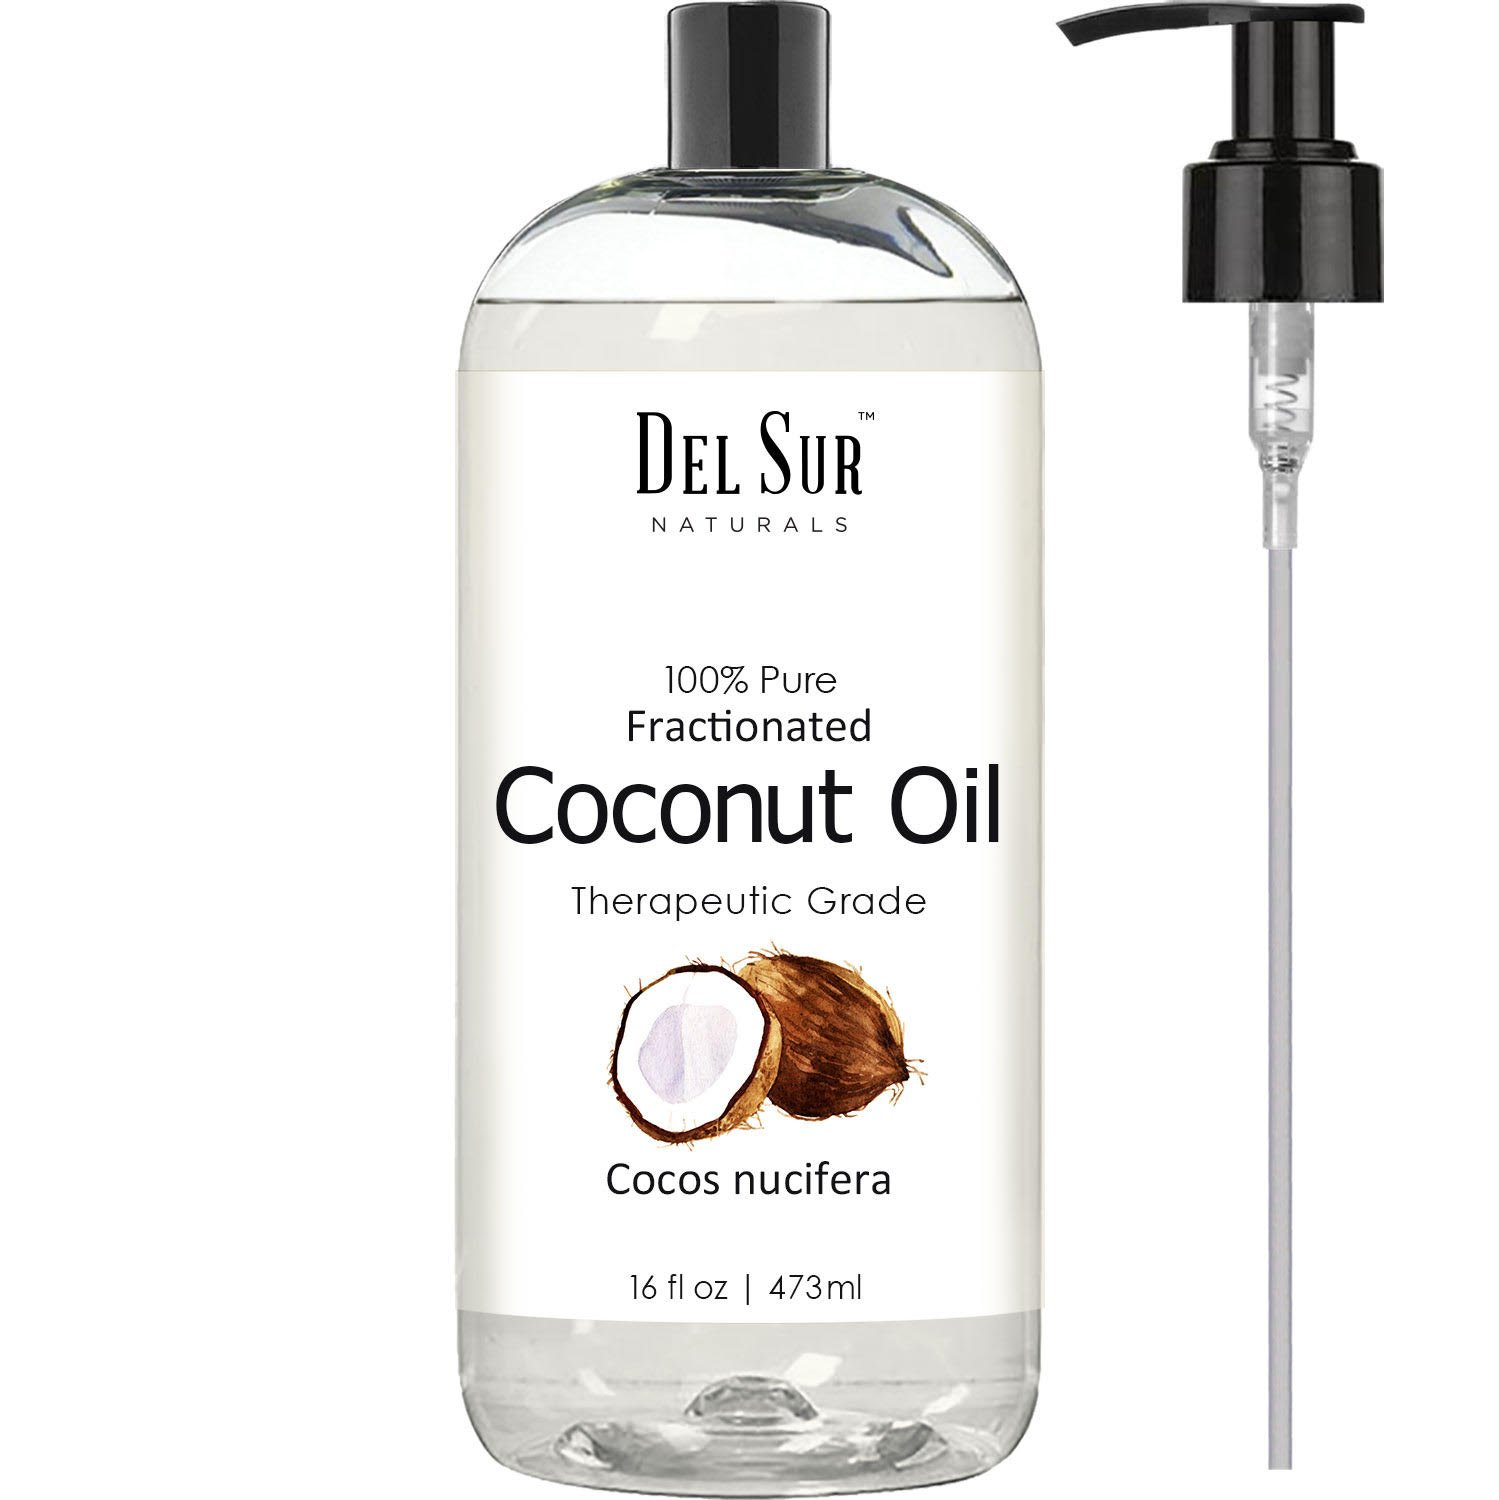 Del Sur Naturals Fractionated Coconut Oil Moisturizer Aromatherapy Relaxing Massage Carrier Oil for